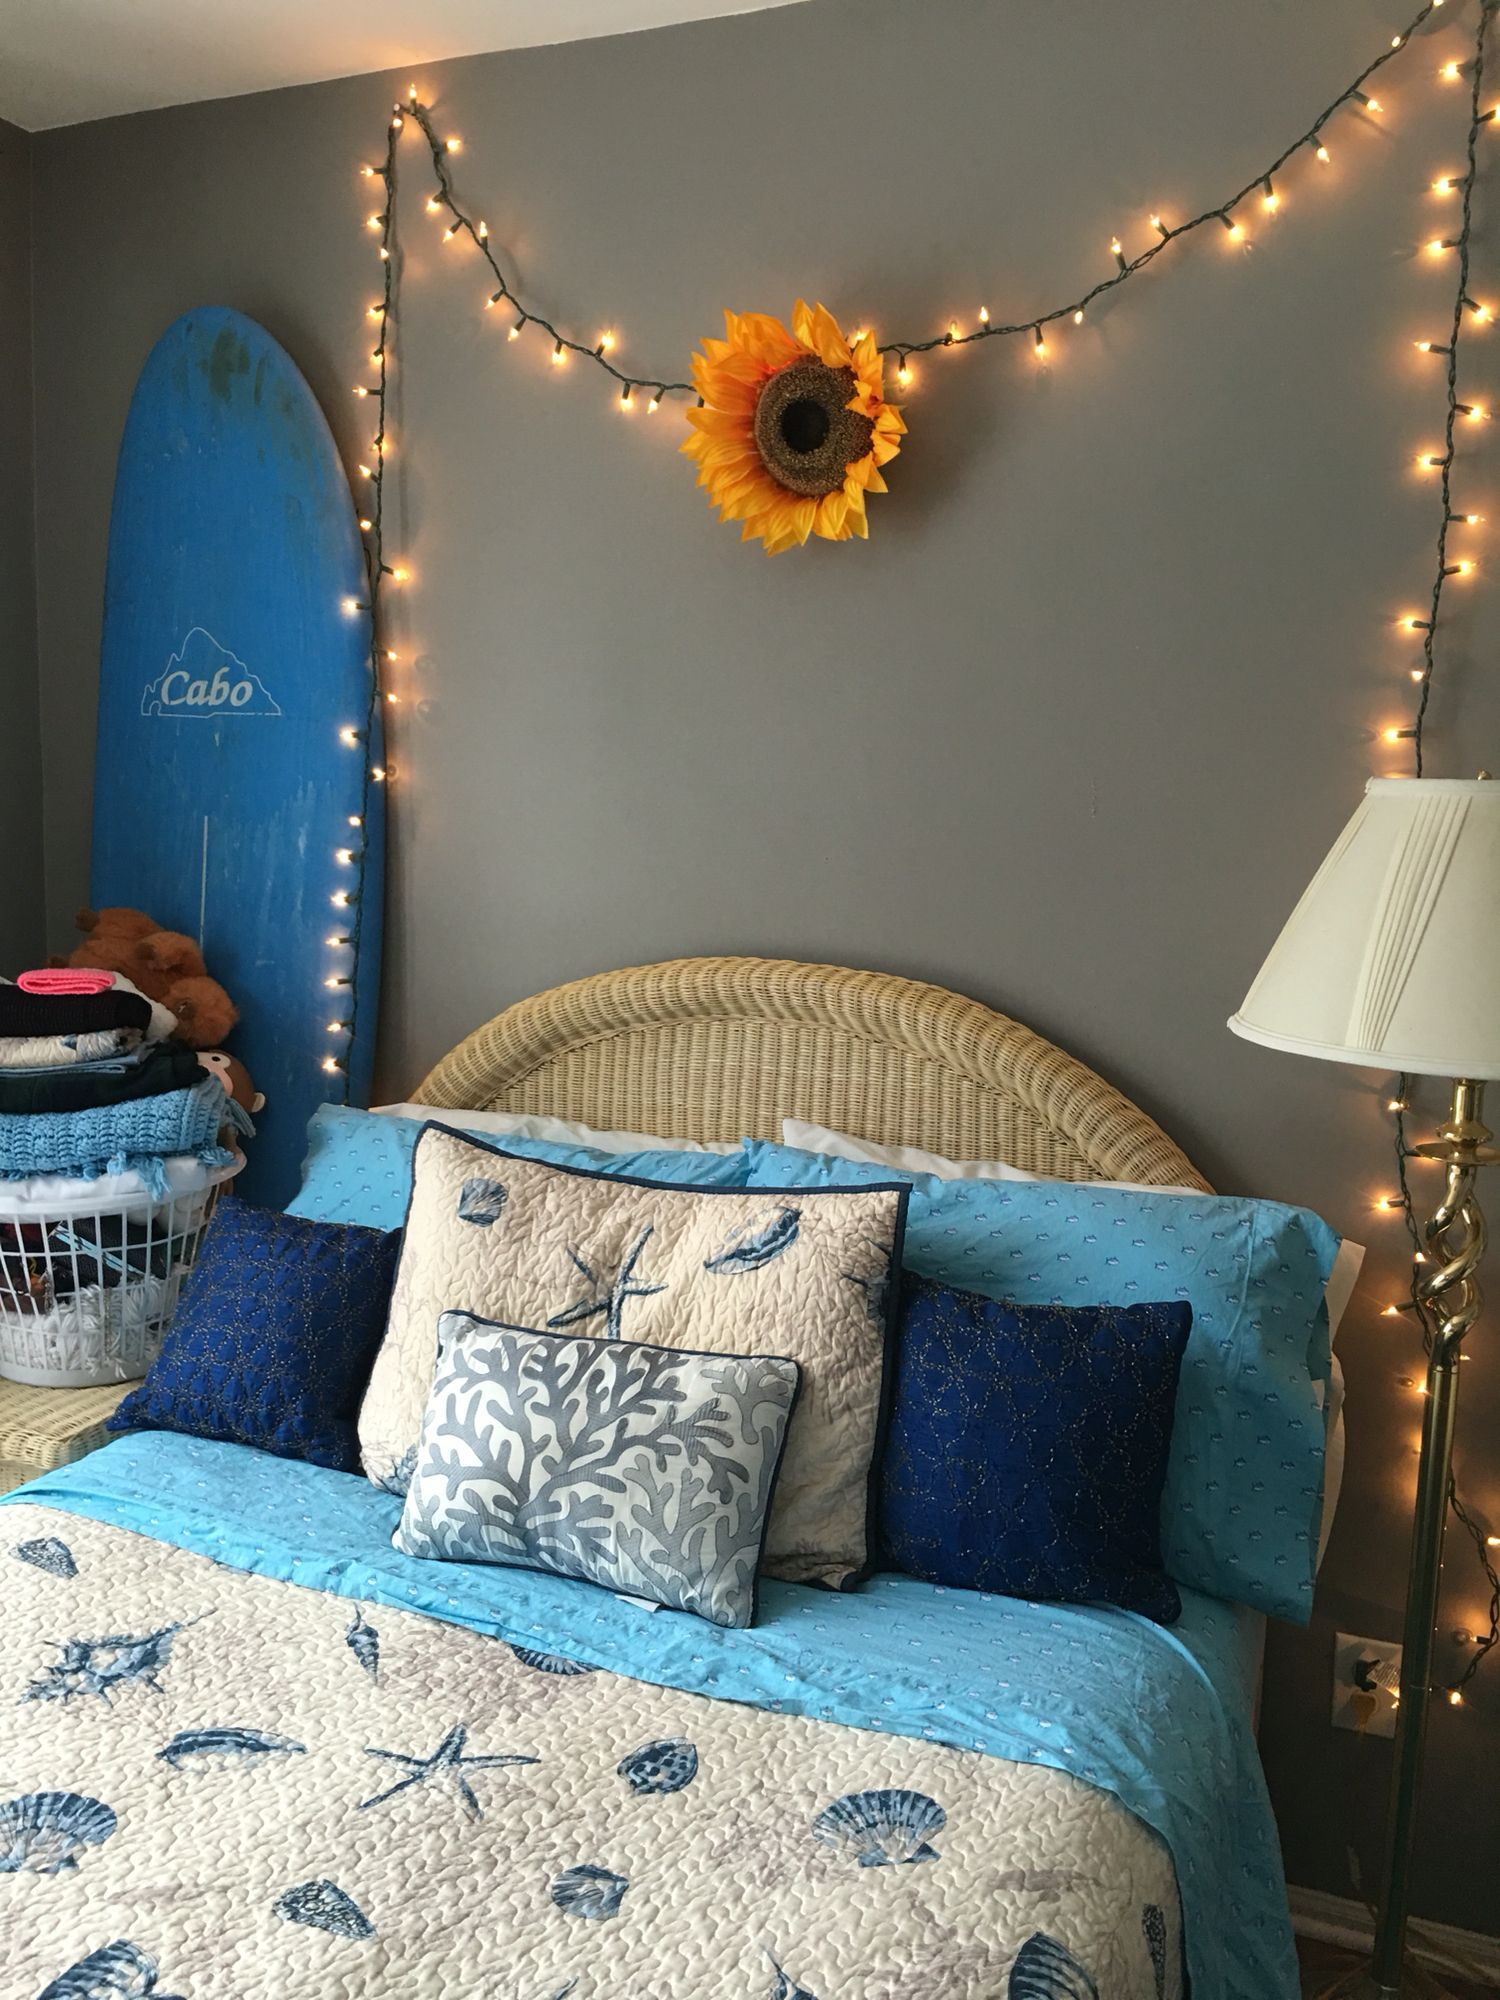 Cute bedroom ideas for college, sunflowers and beach theme ...